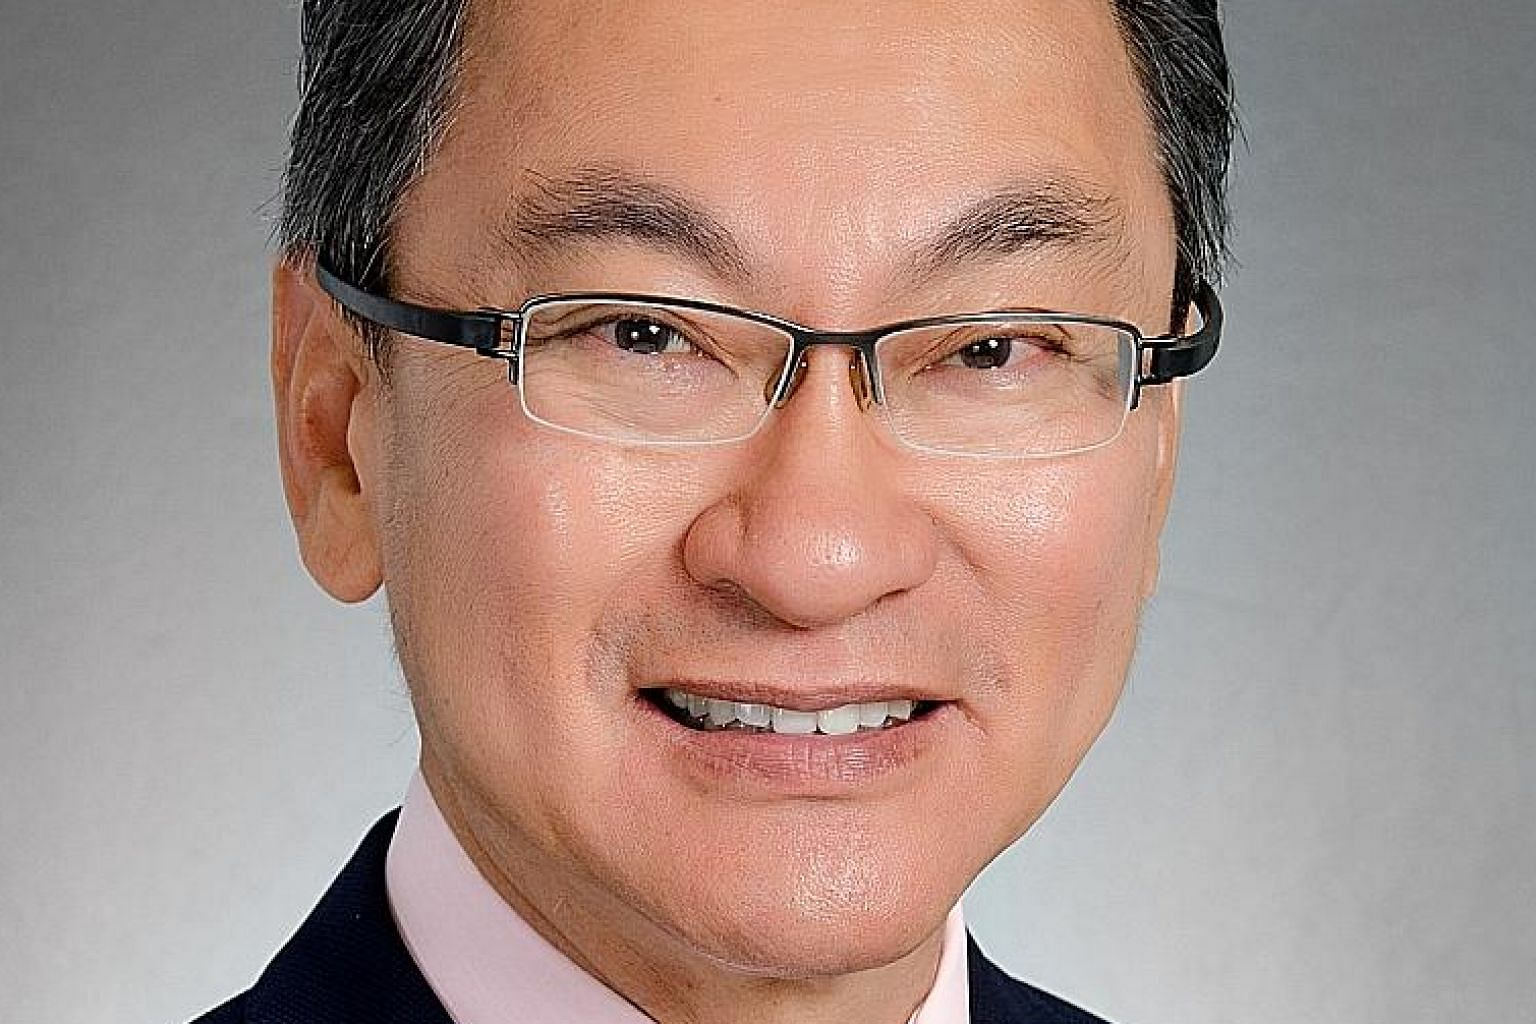 Mr Koh Boon Hwee has been a member of GIC's investment board since 2016.